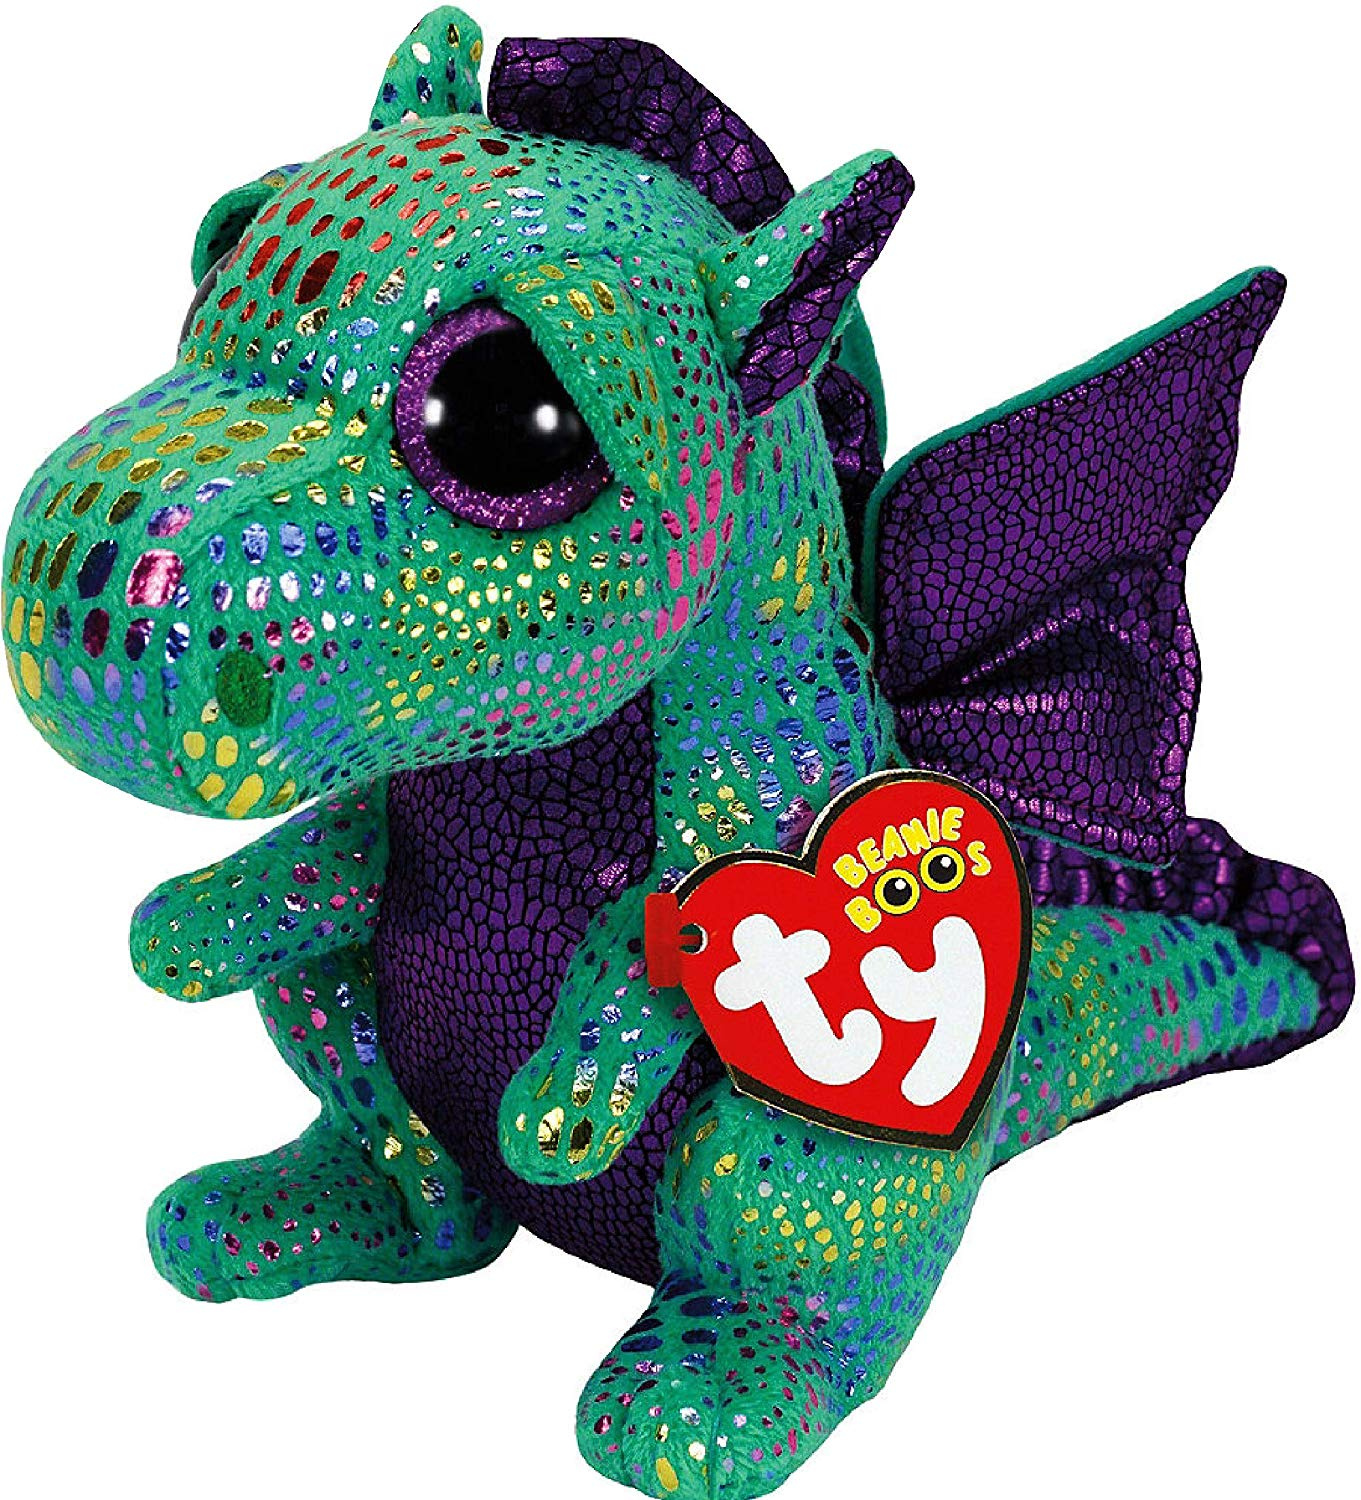 Ty Beanie Boos Toys  Buy Online from Fishpond.com c6440be11b3e